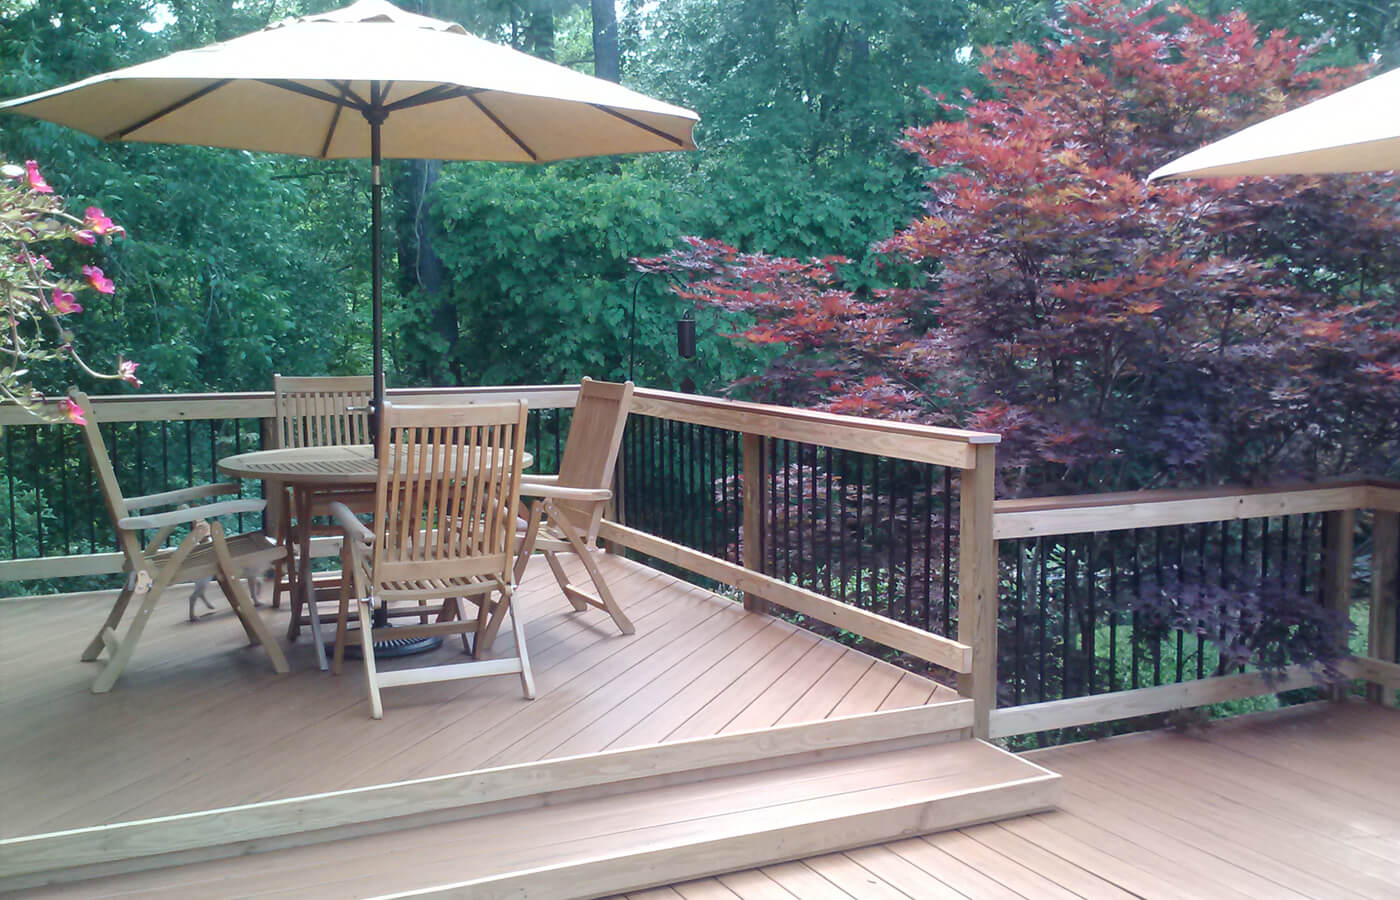 Custom wood deck with seating area